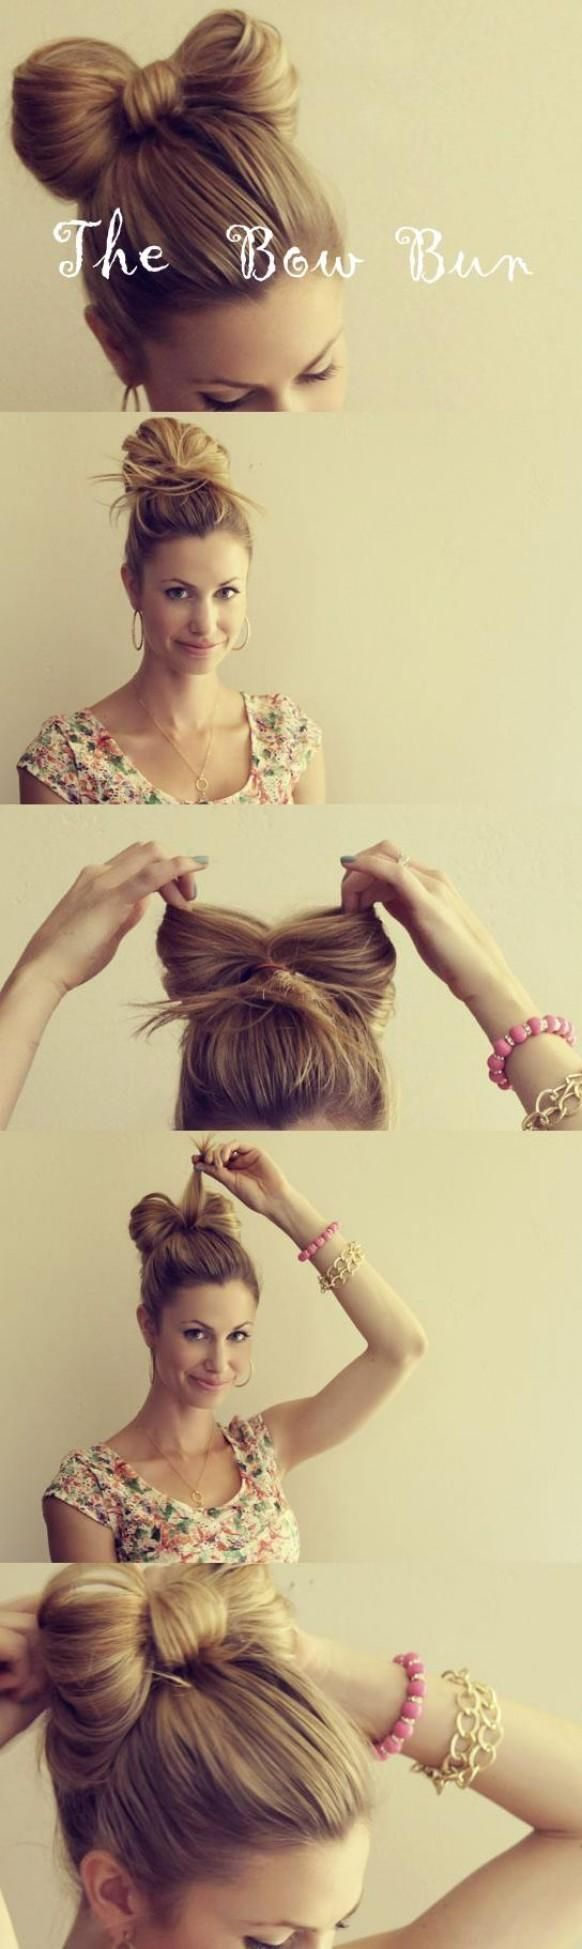 DIY hair bow bun tutorial ♥ Gorgeous Wedding Hair - Weddbook